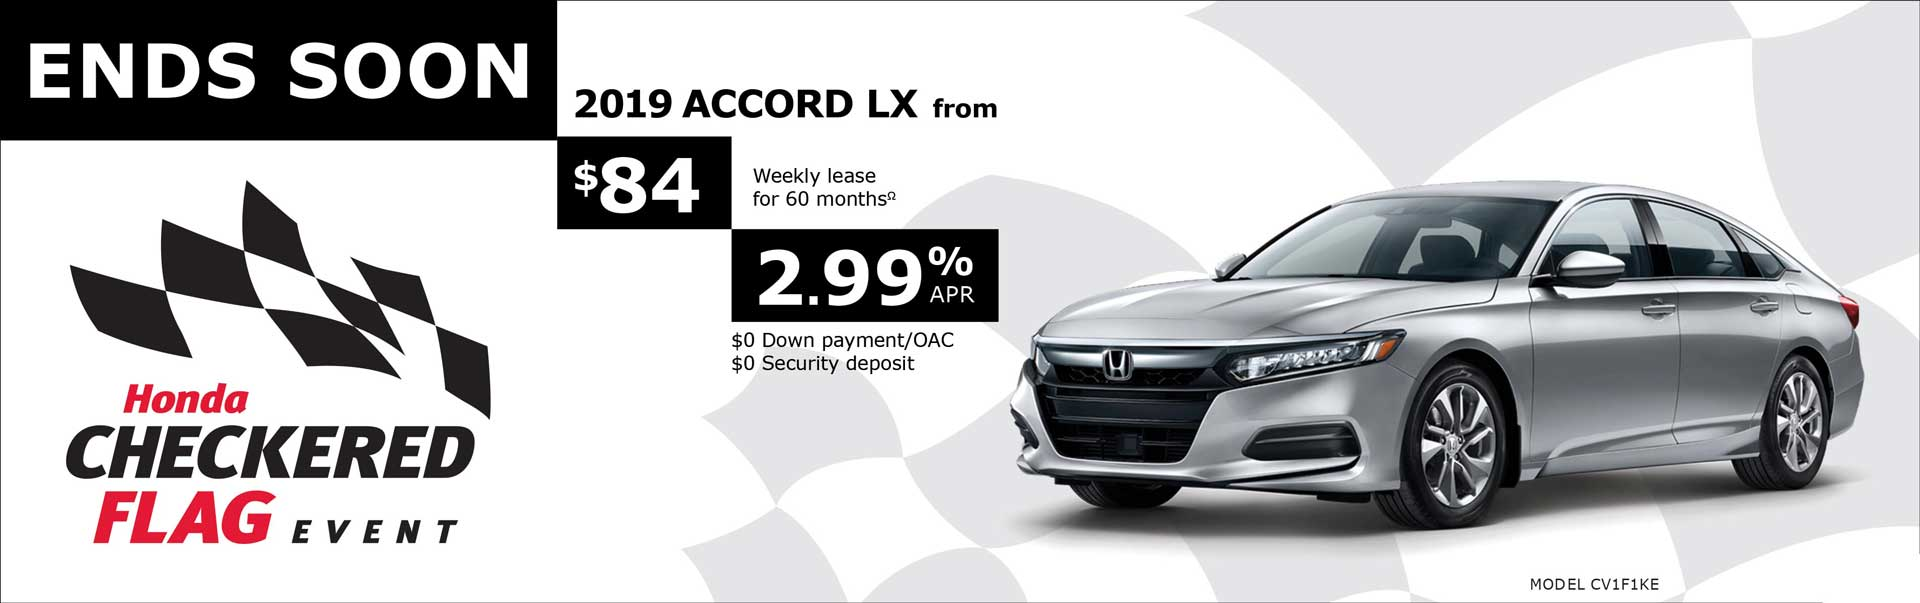 2019 Accord from $84 Weekly